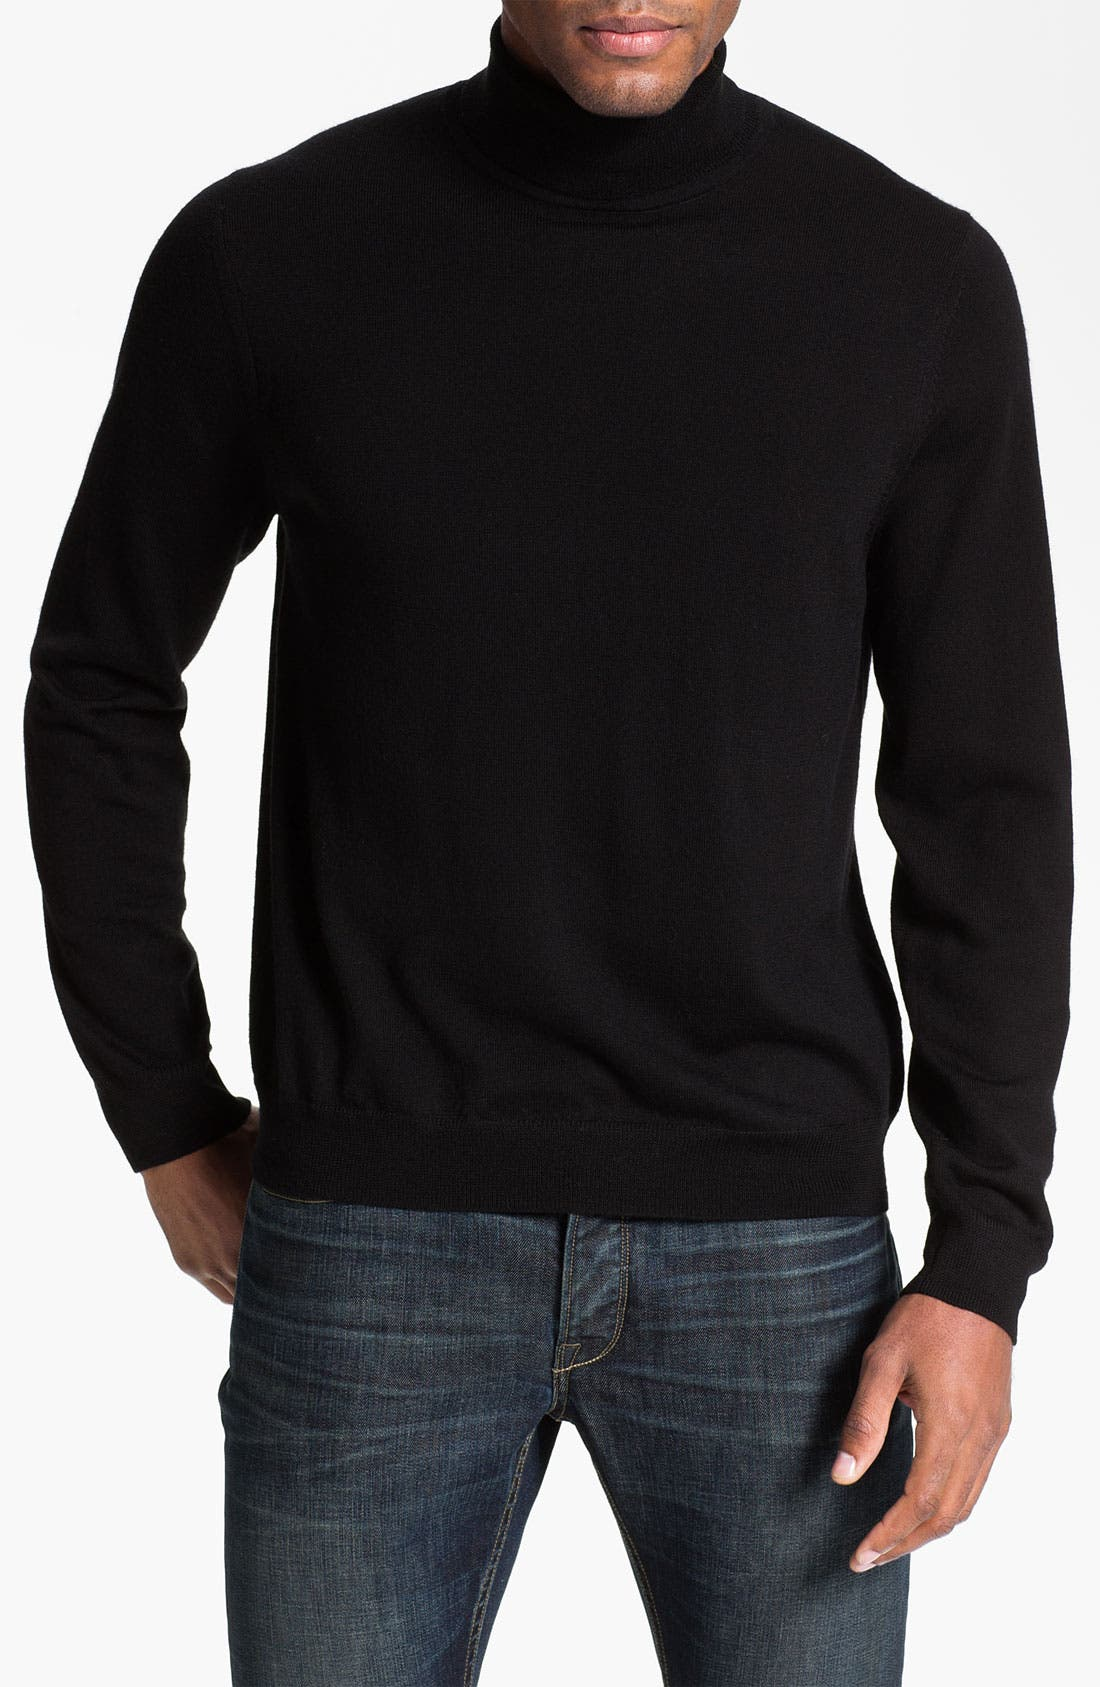 Alternate Image 1 Selected - Nordstrom Merino Wool Turtleneck